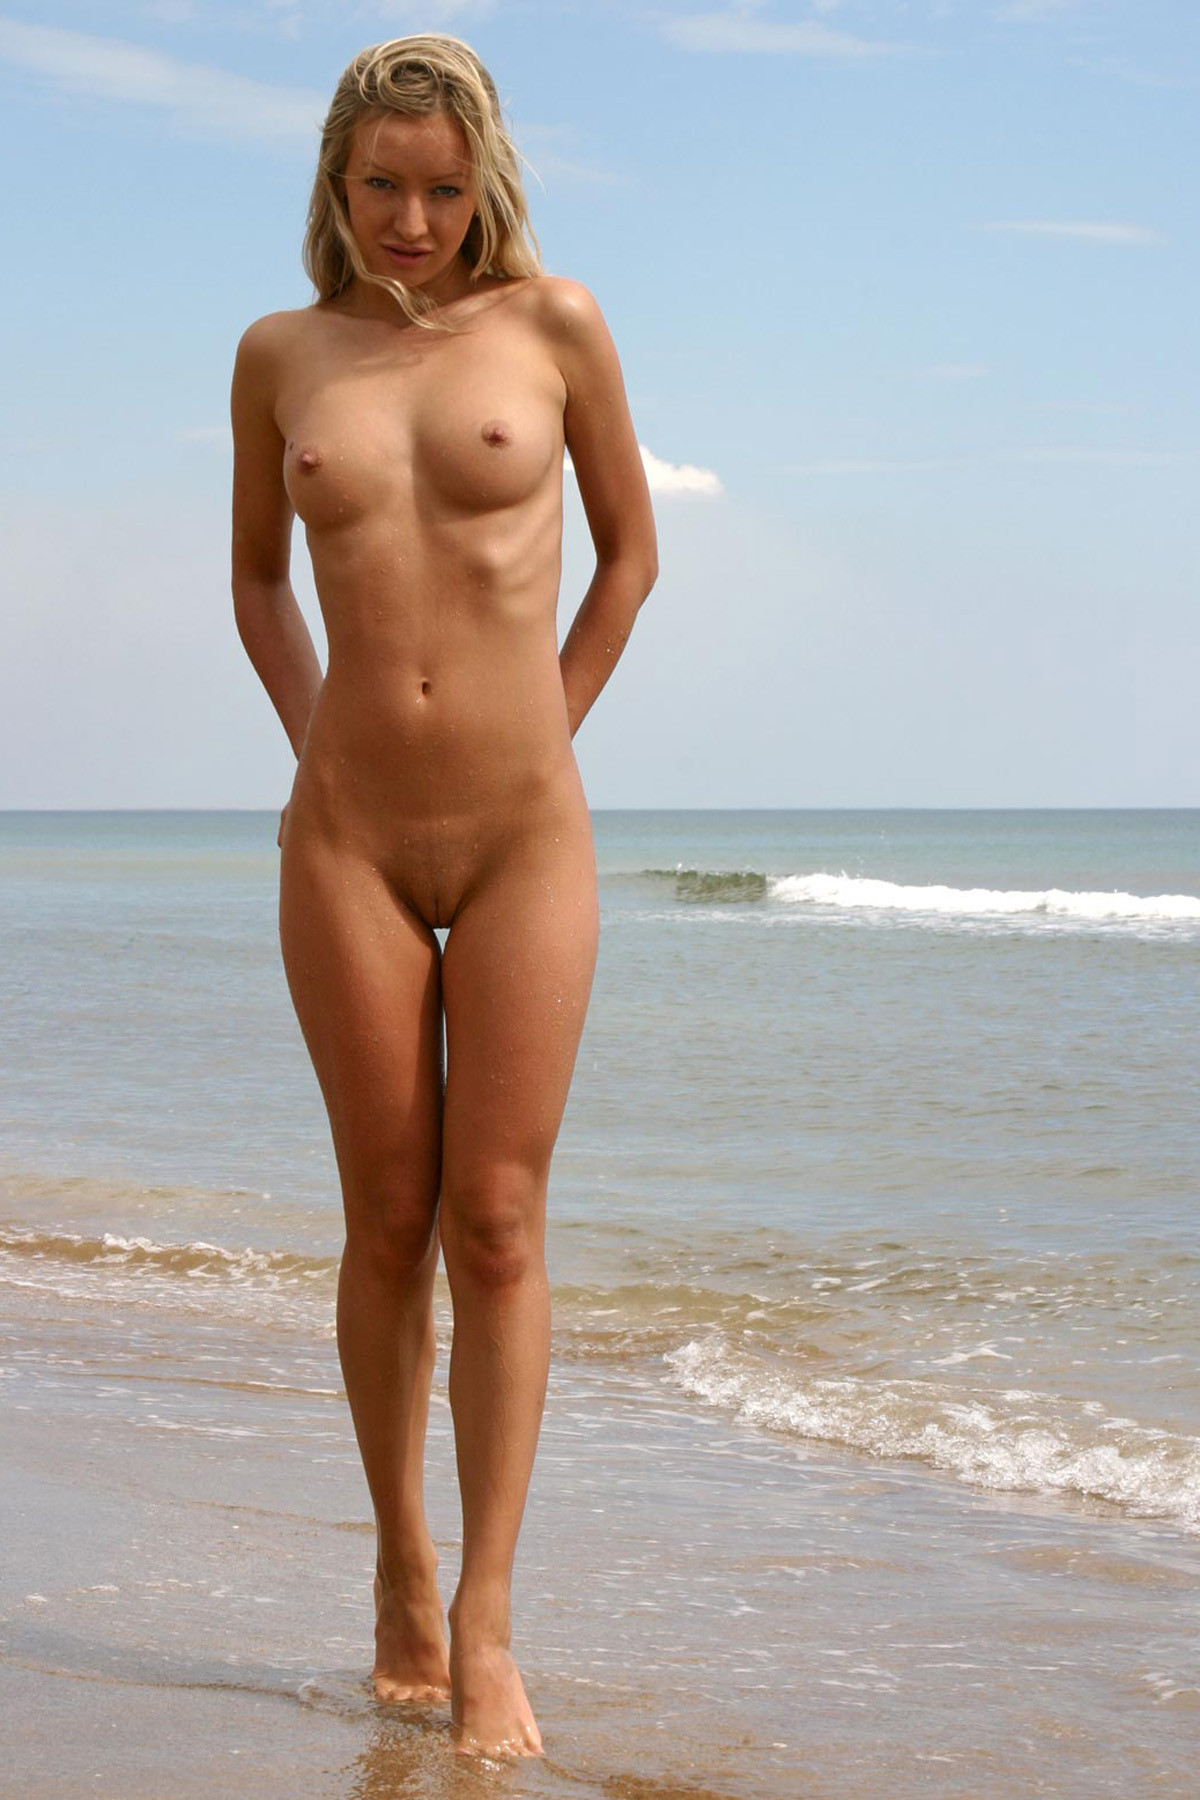 Understand Bulgarian female nude model